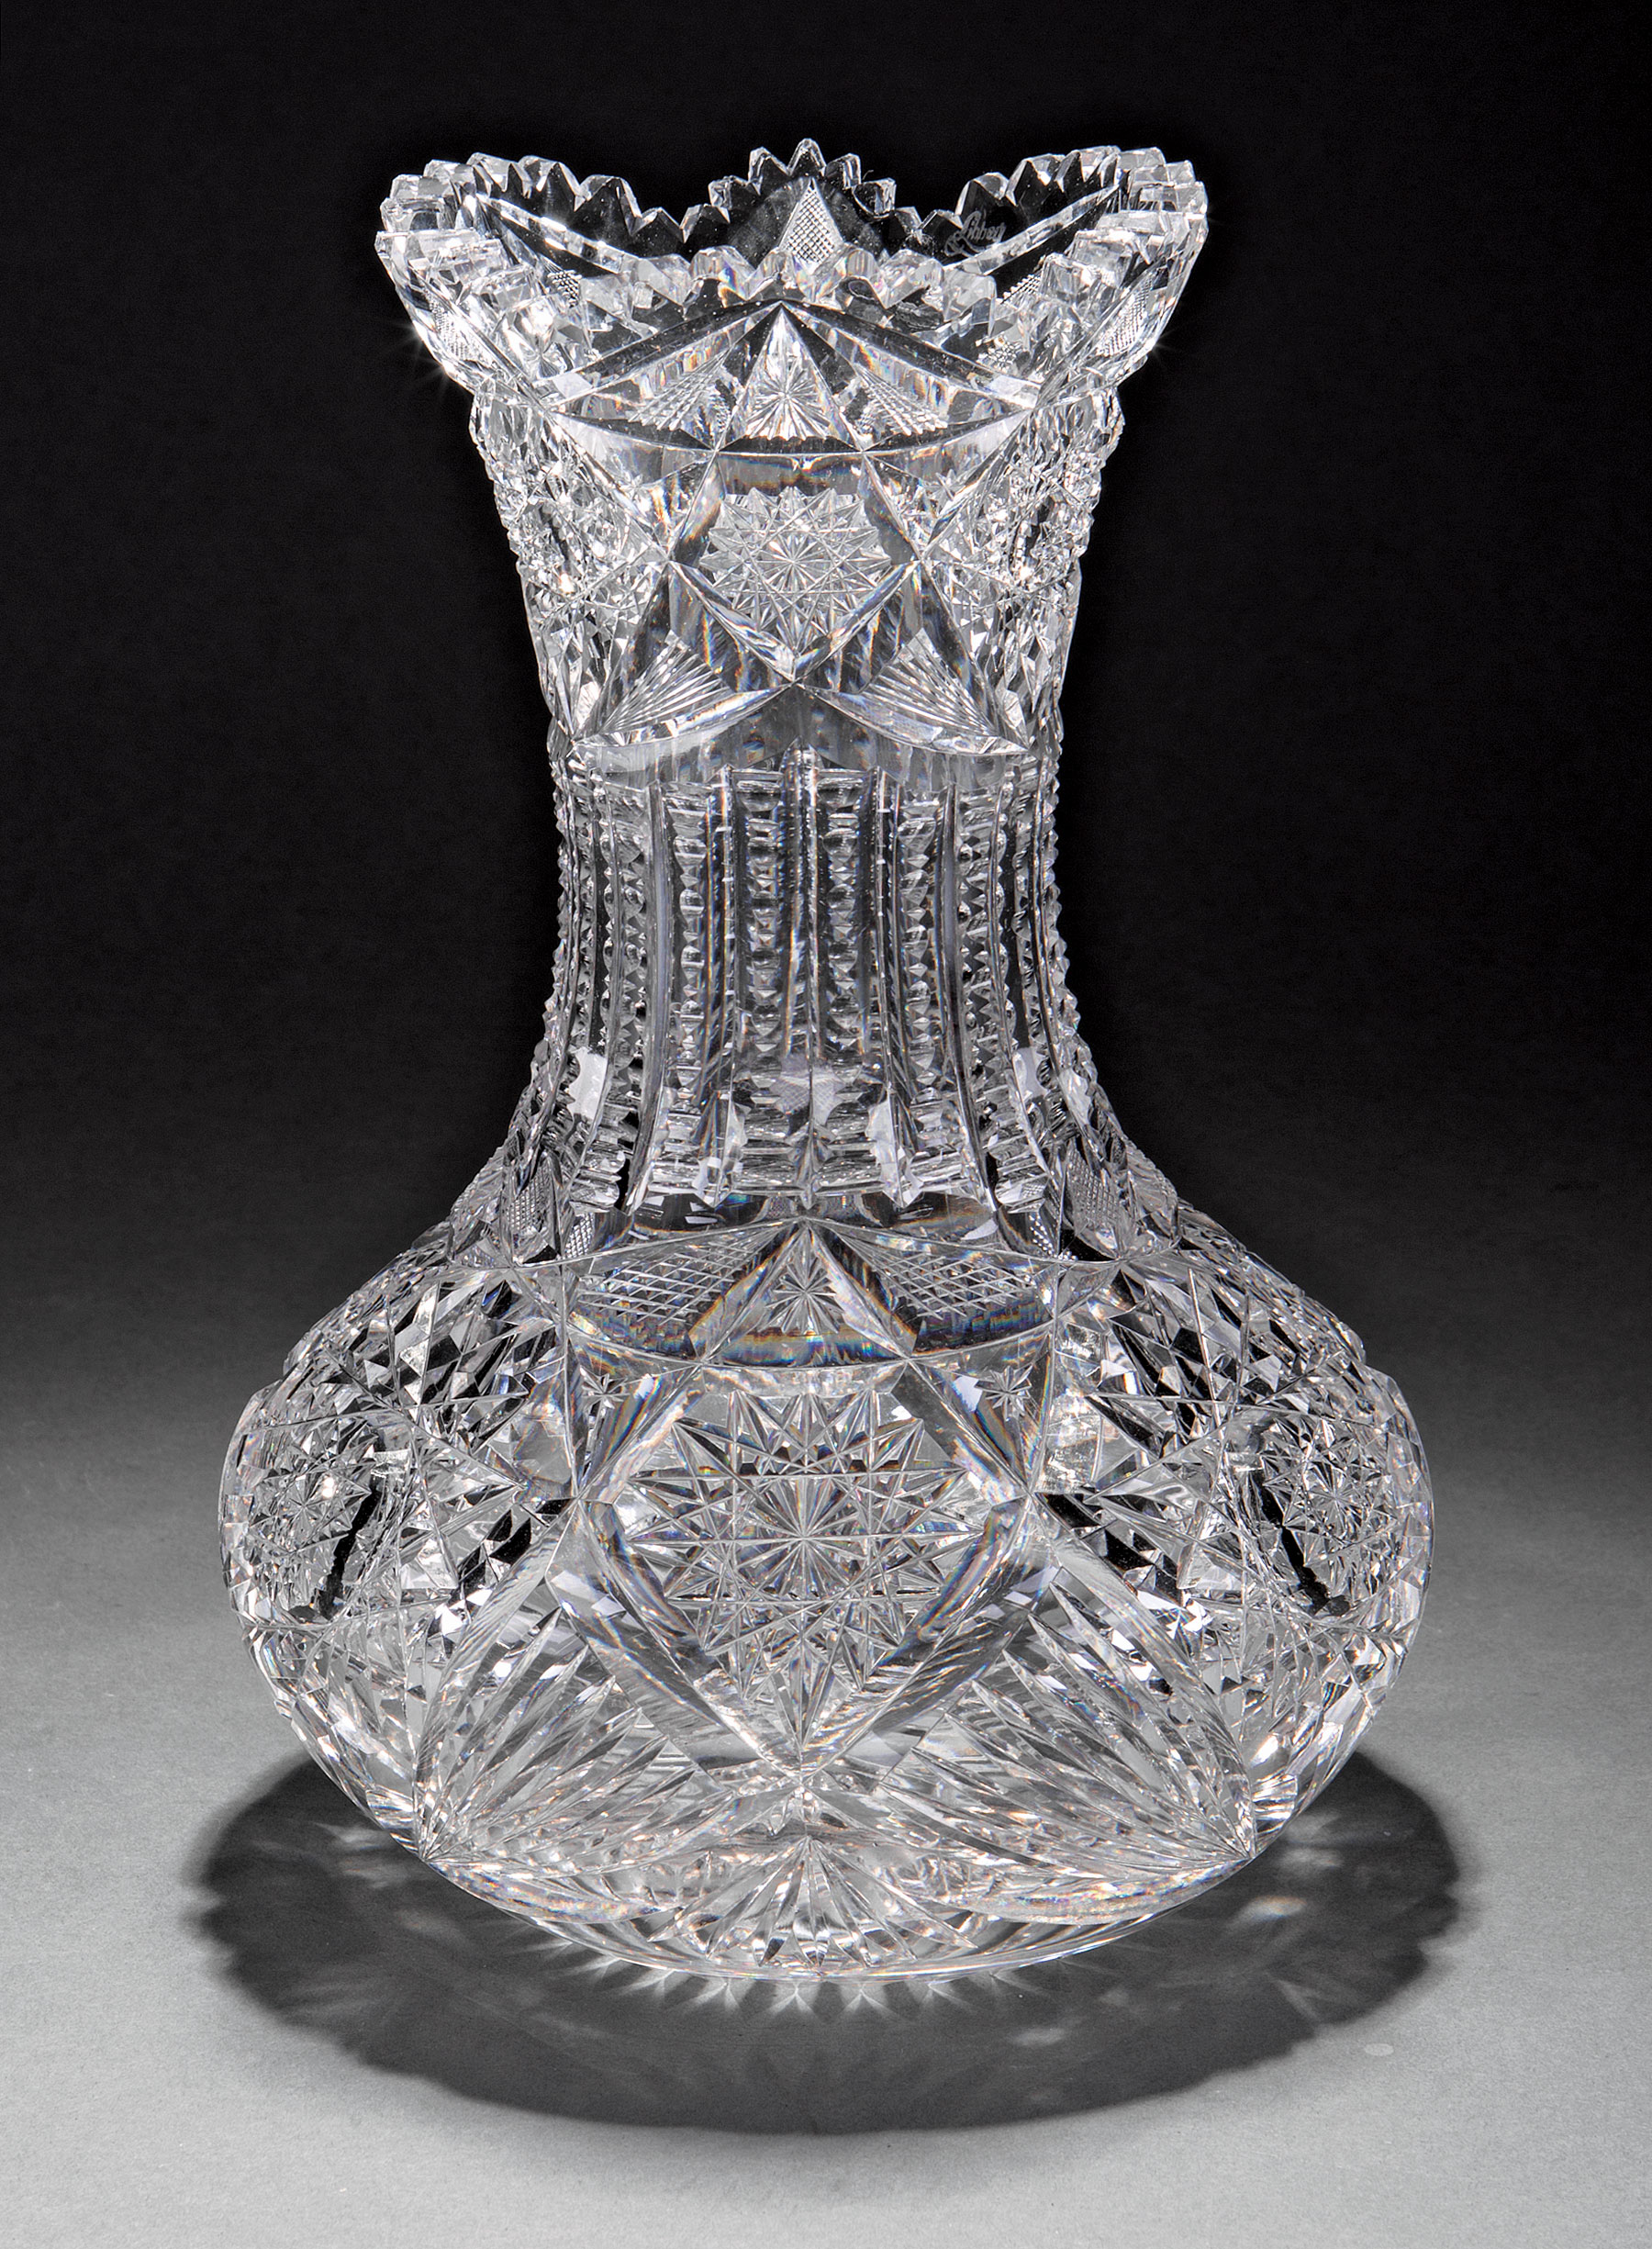 Lot 763 - Large and Rare Libbey American Brilliant Cut Glass Vase , marked, h. 10 1/4 in., dia. 7 1/2 in .